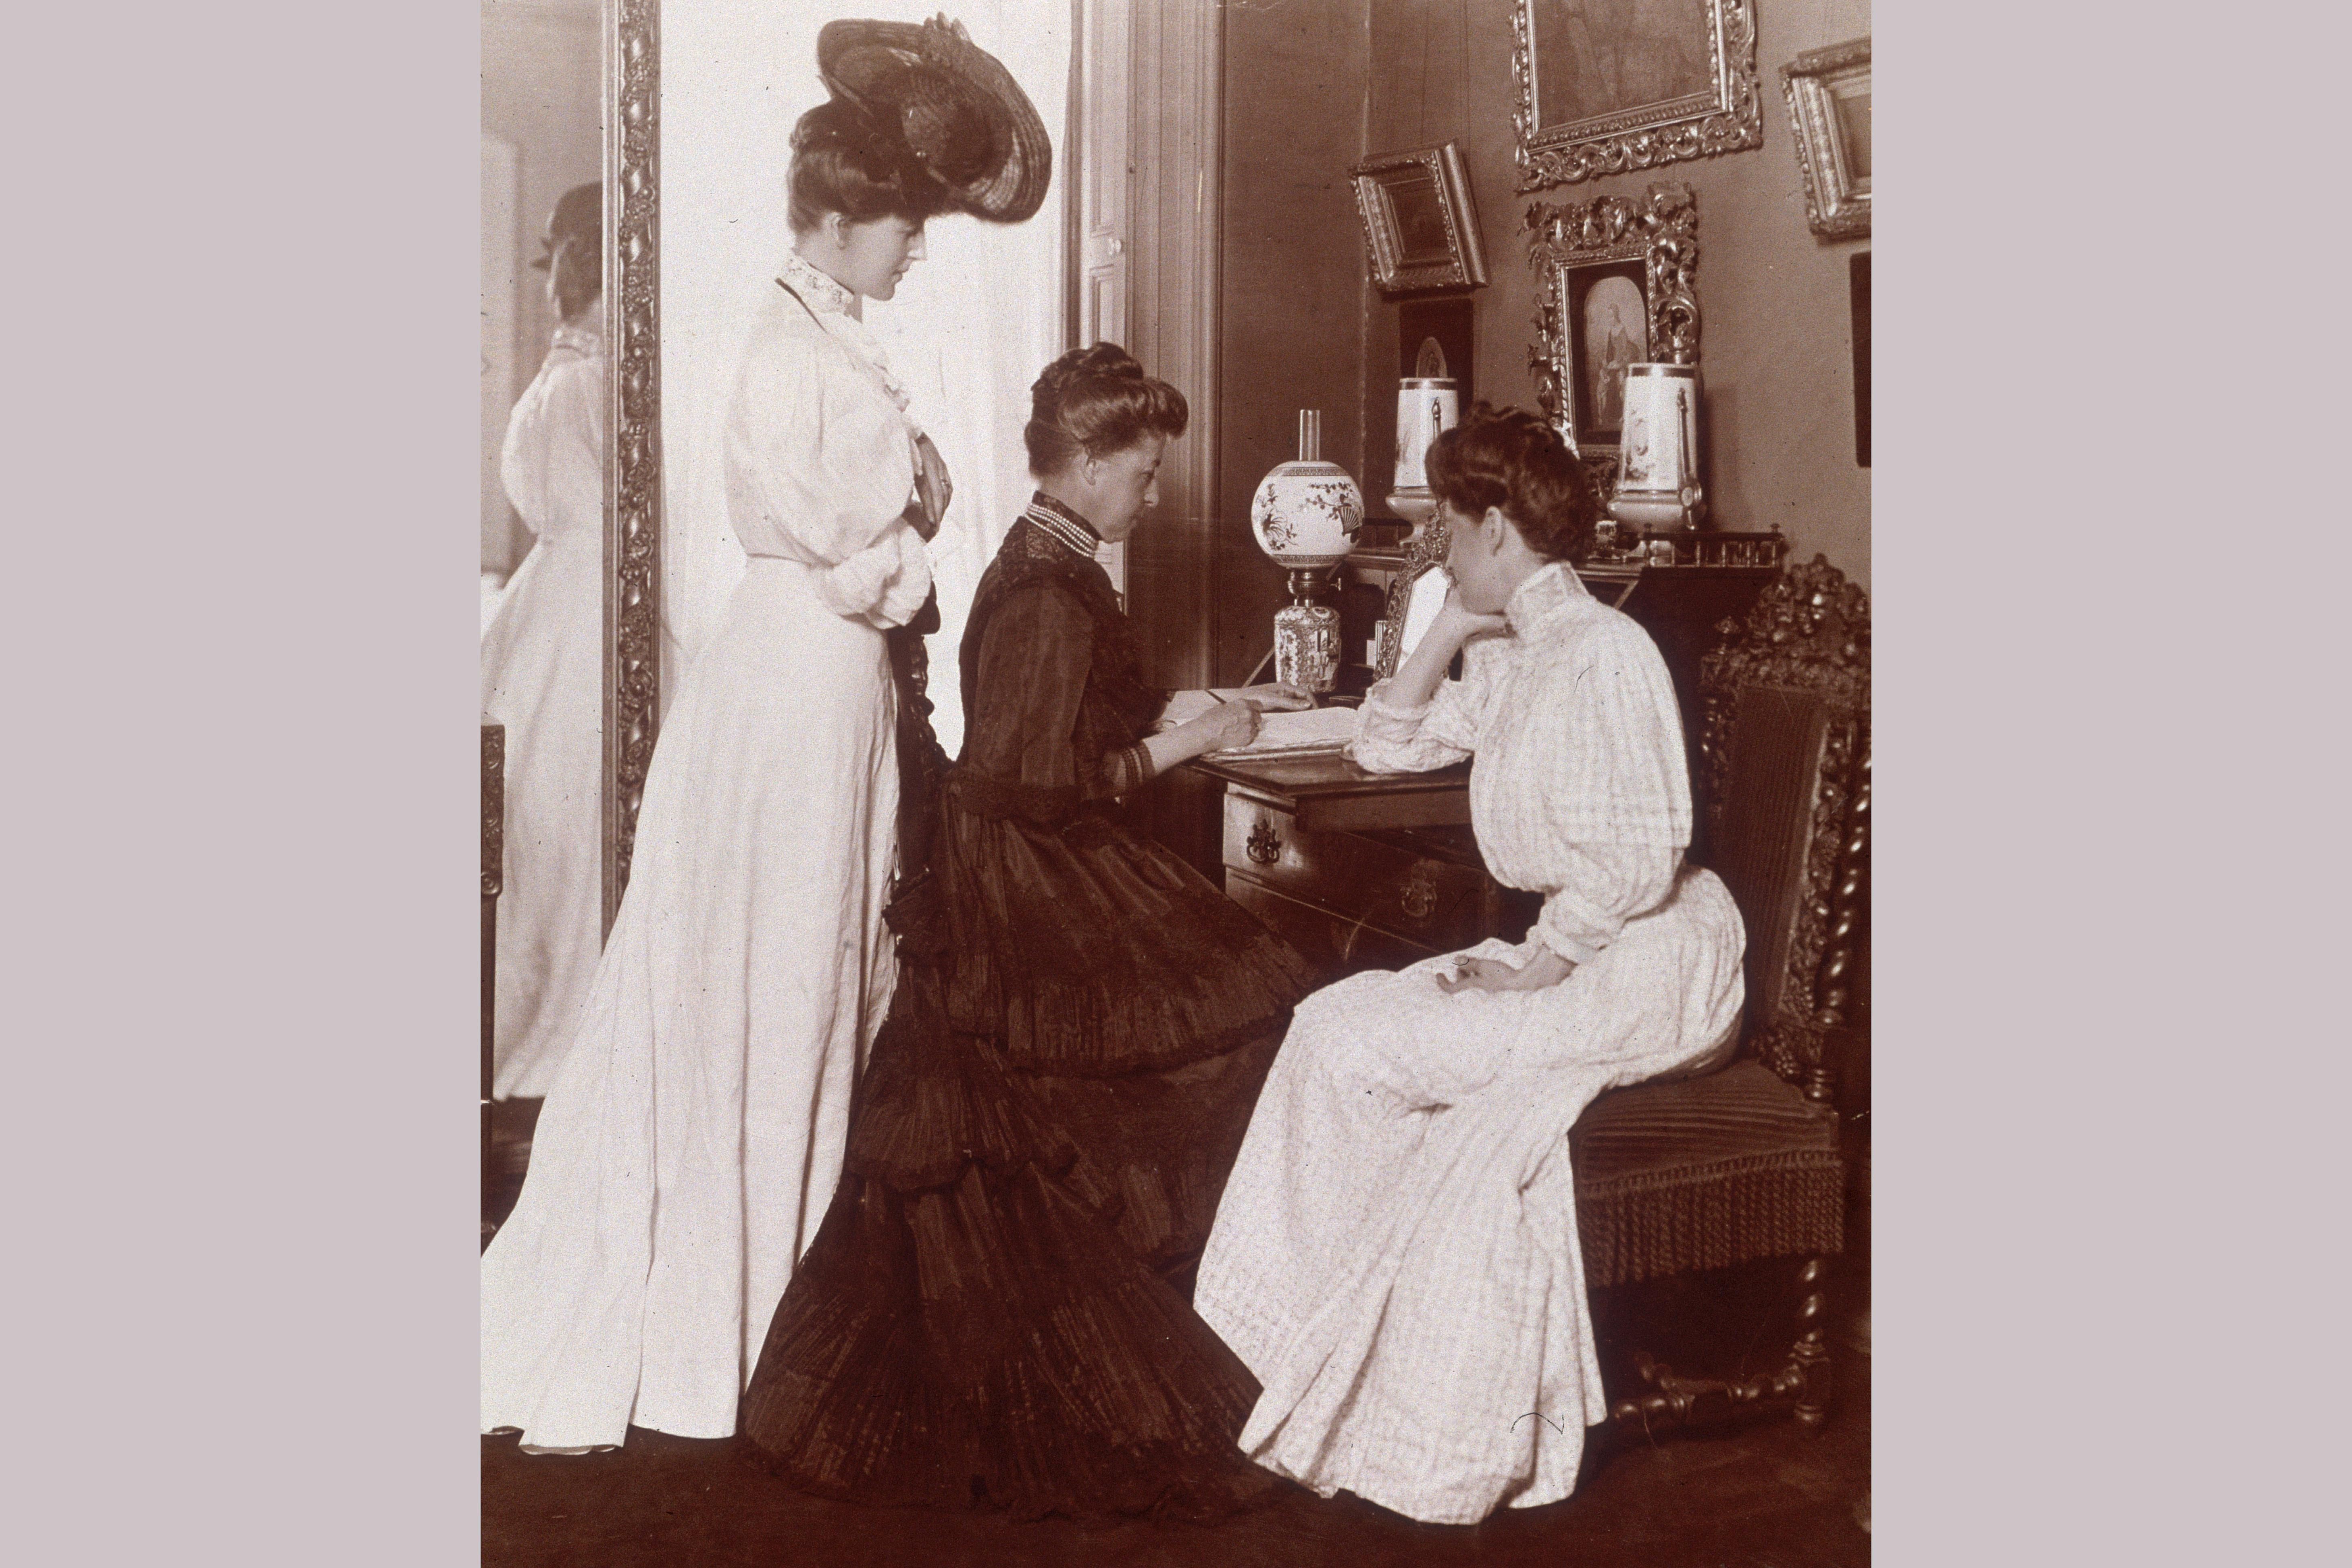 Writers Alice Maud Duer, Mrs. James Gore King Duer and Caroline King Duer, at home